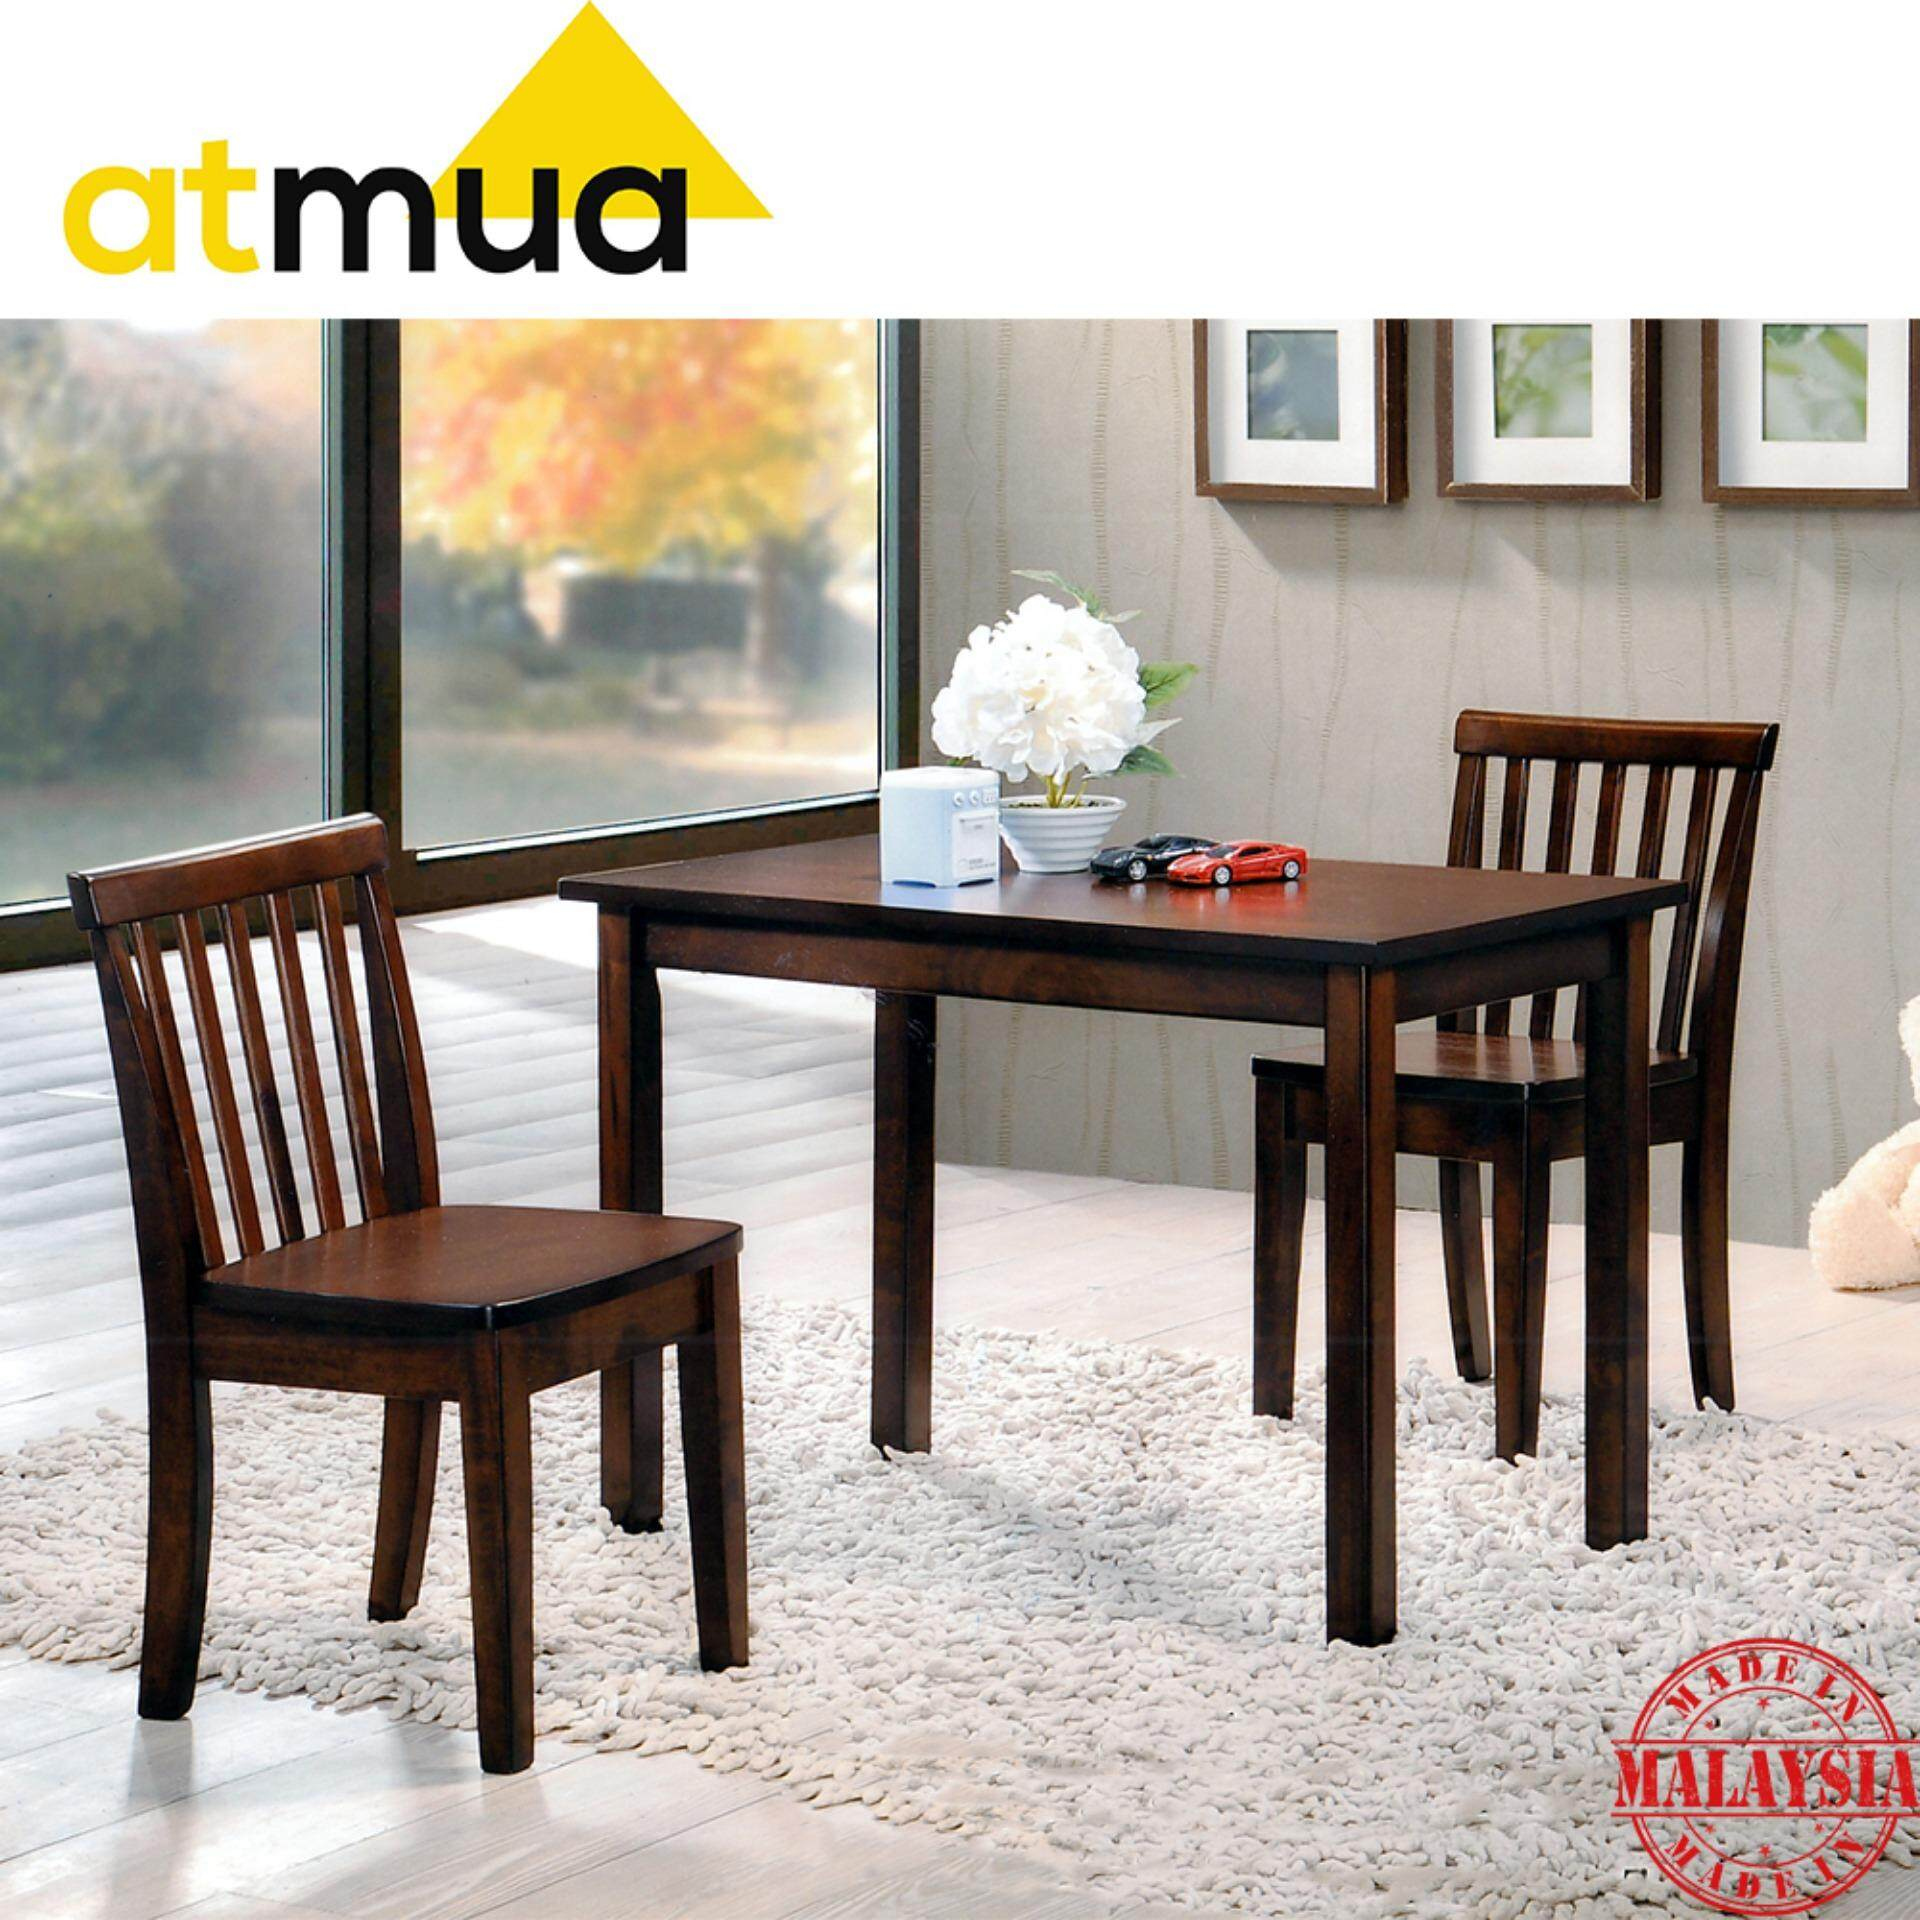 [PROMOTION] Atmua Mini Dining Set Kid Table and Chair - (1 Table + 2 Chair) [Full Solid Rubber Wood]